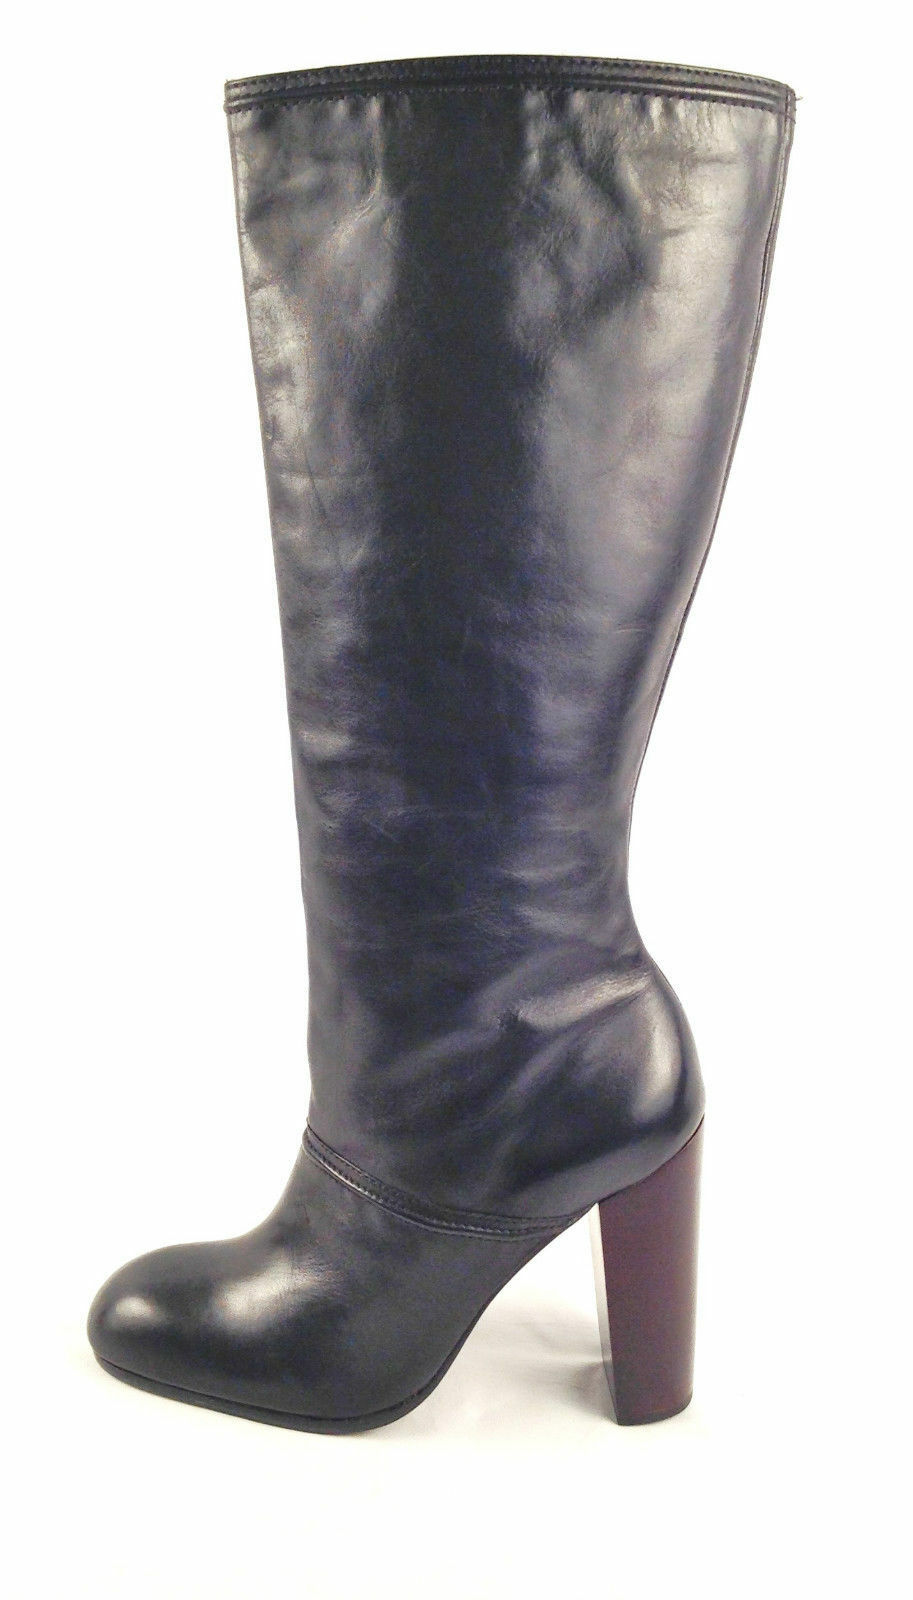 ELIZABETH AND JAMES CREED WOMEN'S  KNEE HIGH LEATHER BOOTS SHOES 495.00  9.5